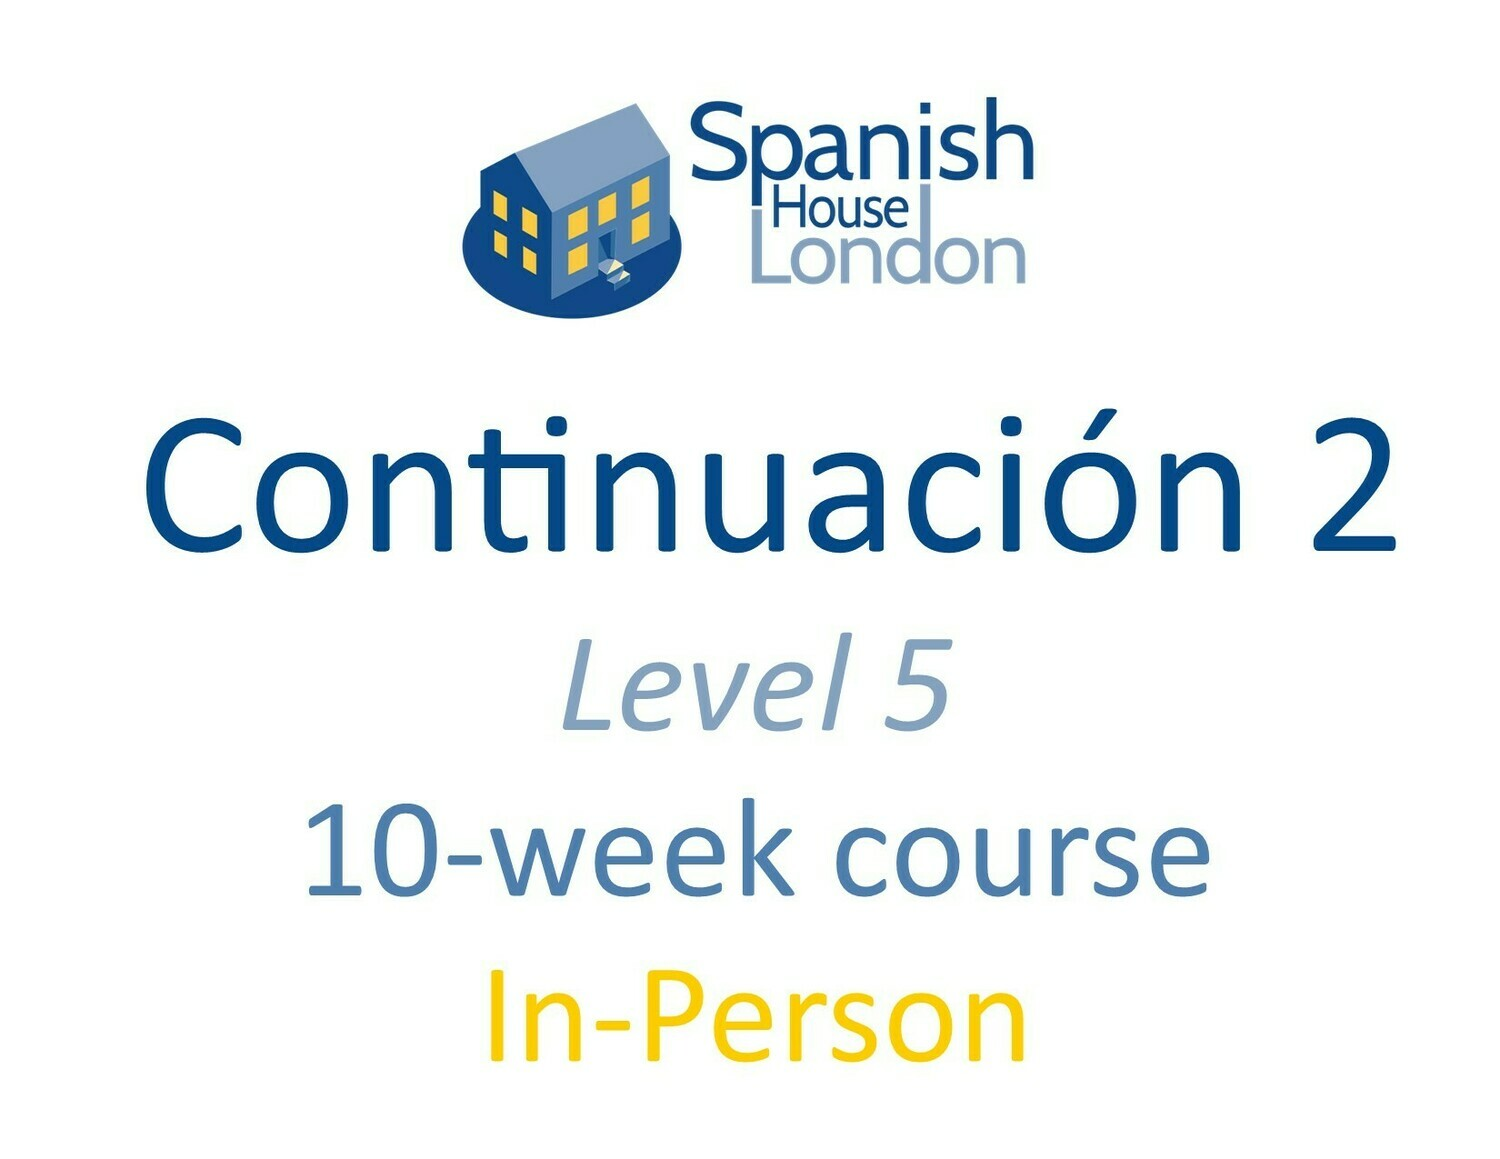 Continuacion 2 Course starting on 4th August at 7.30pm in Euston / King's Cross